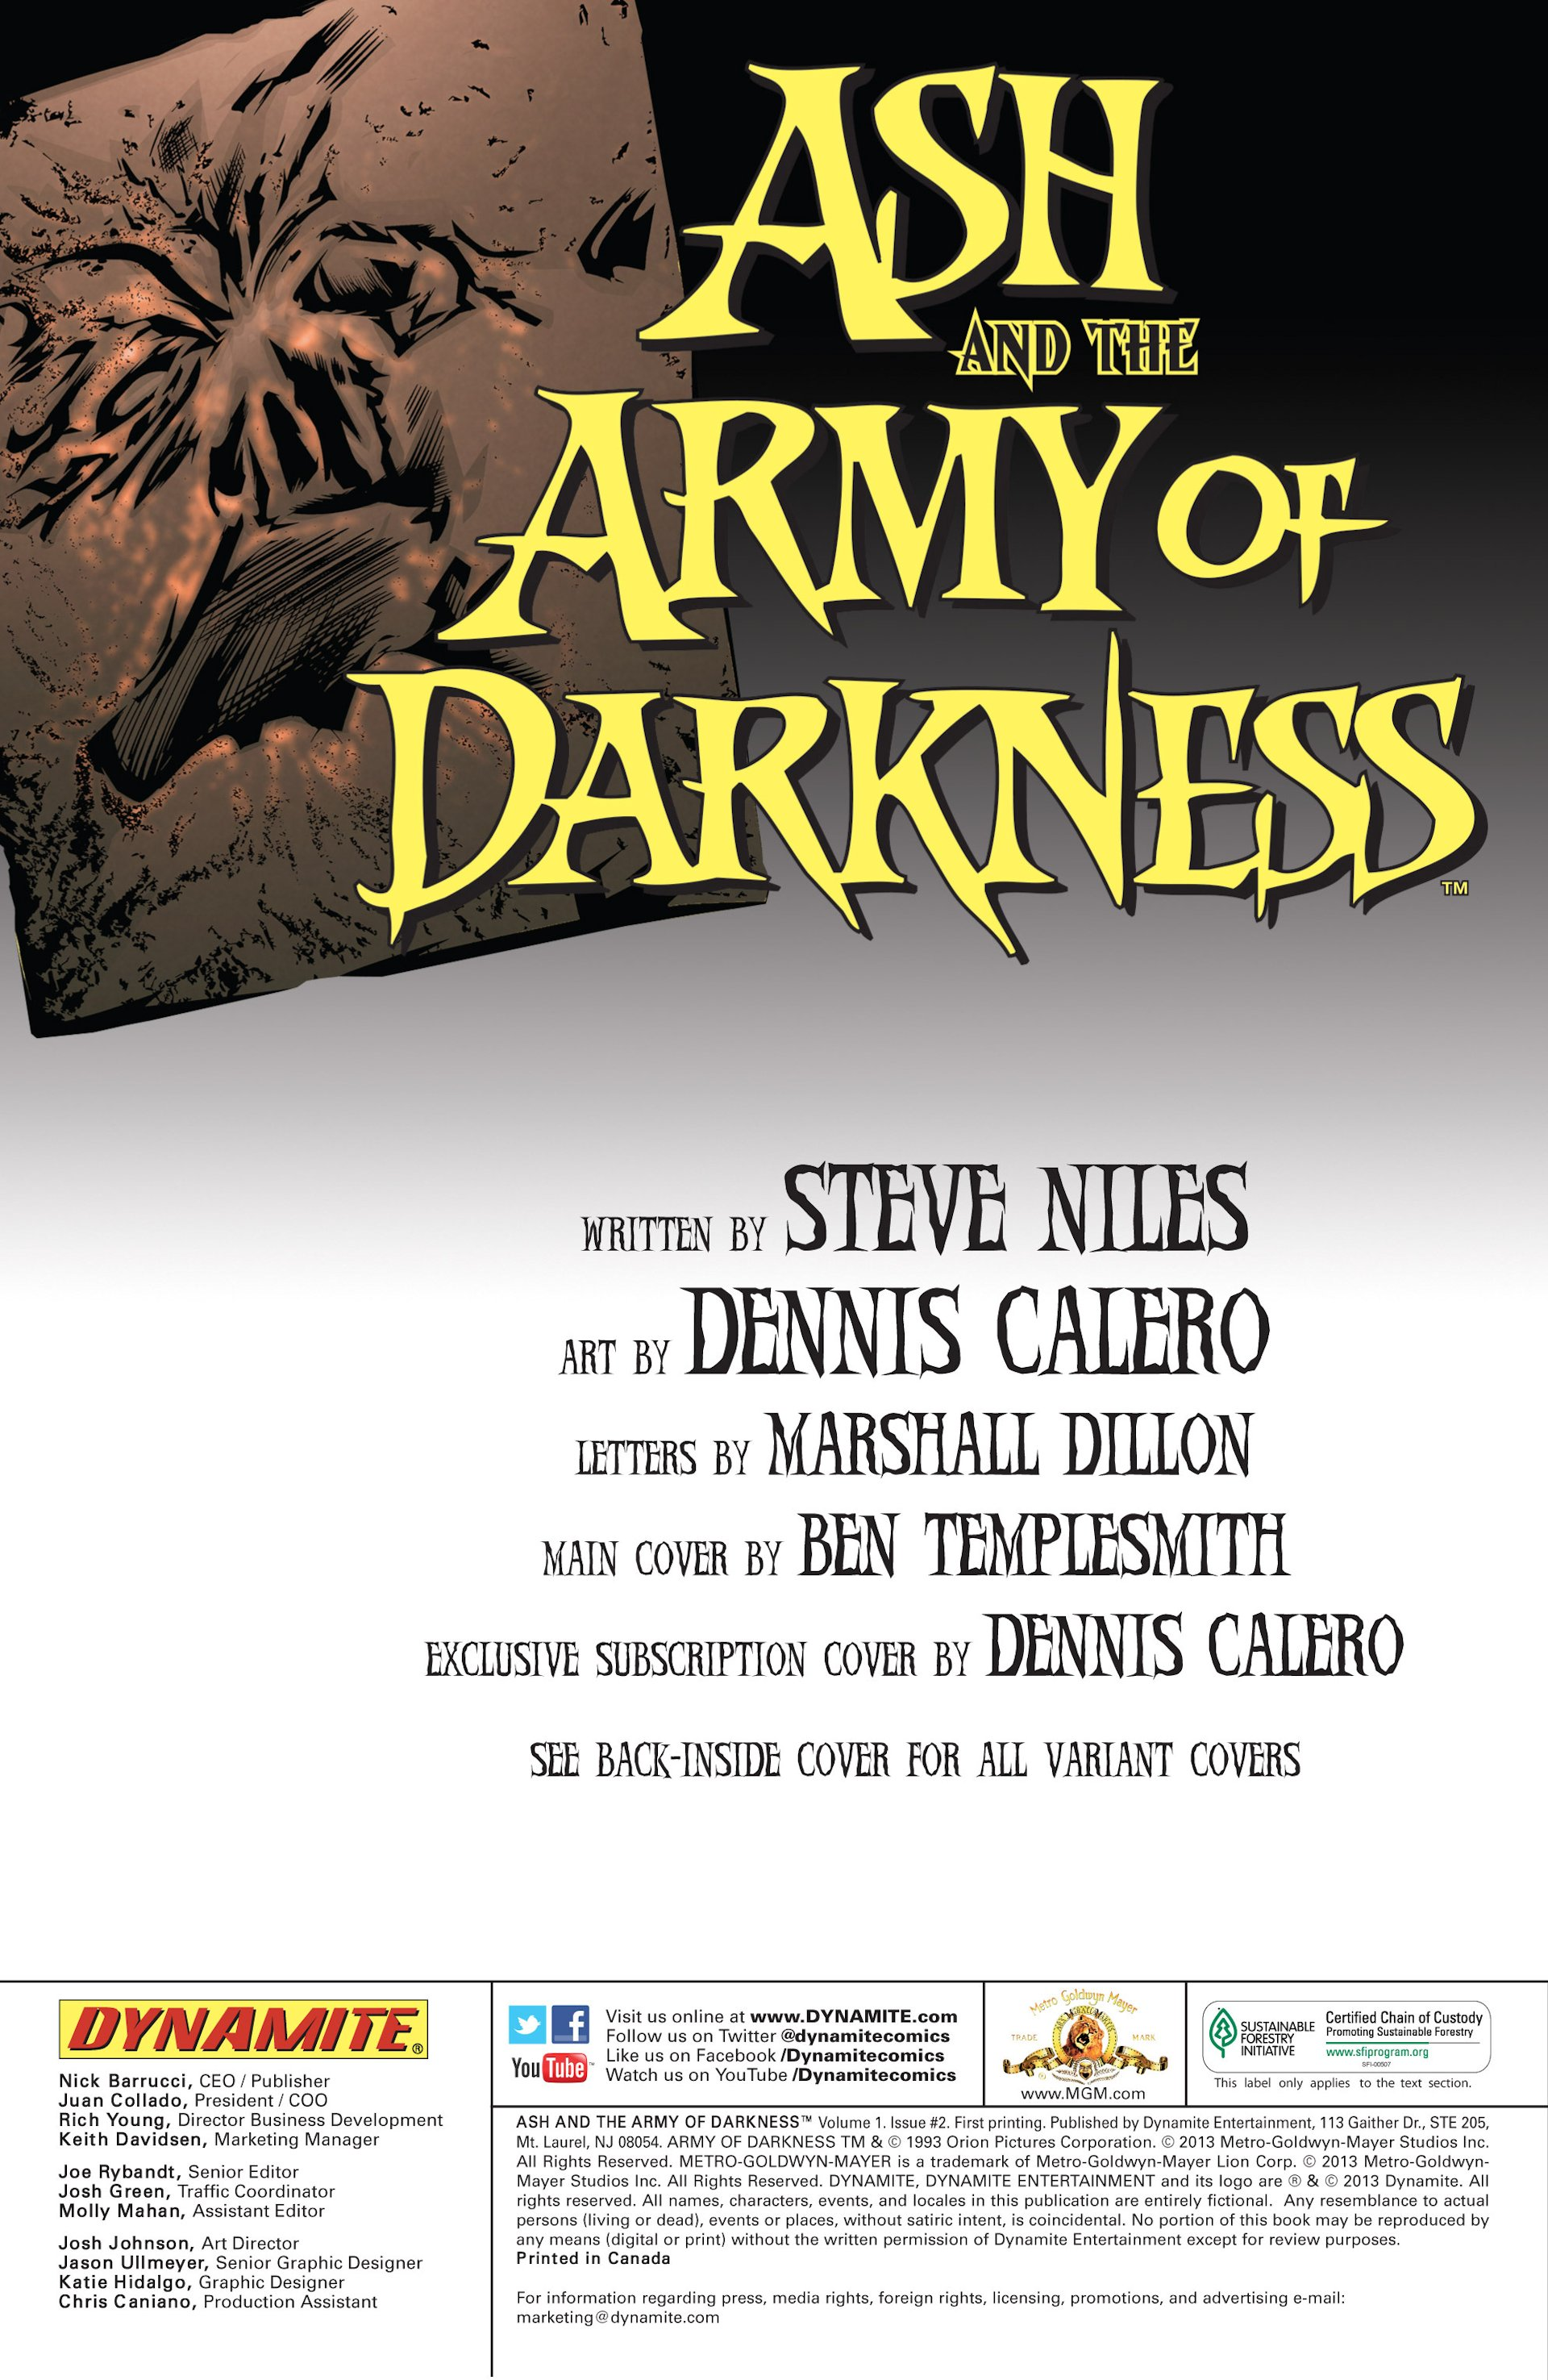 Read online Ash and the Army of Darkness comic -  Issue #2 - 2